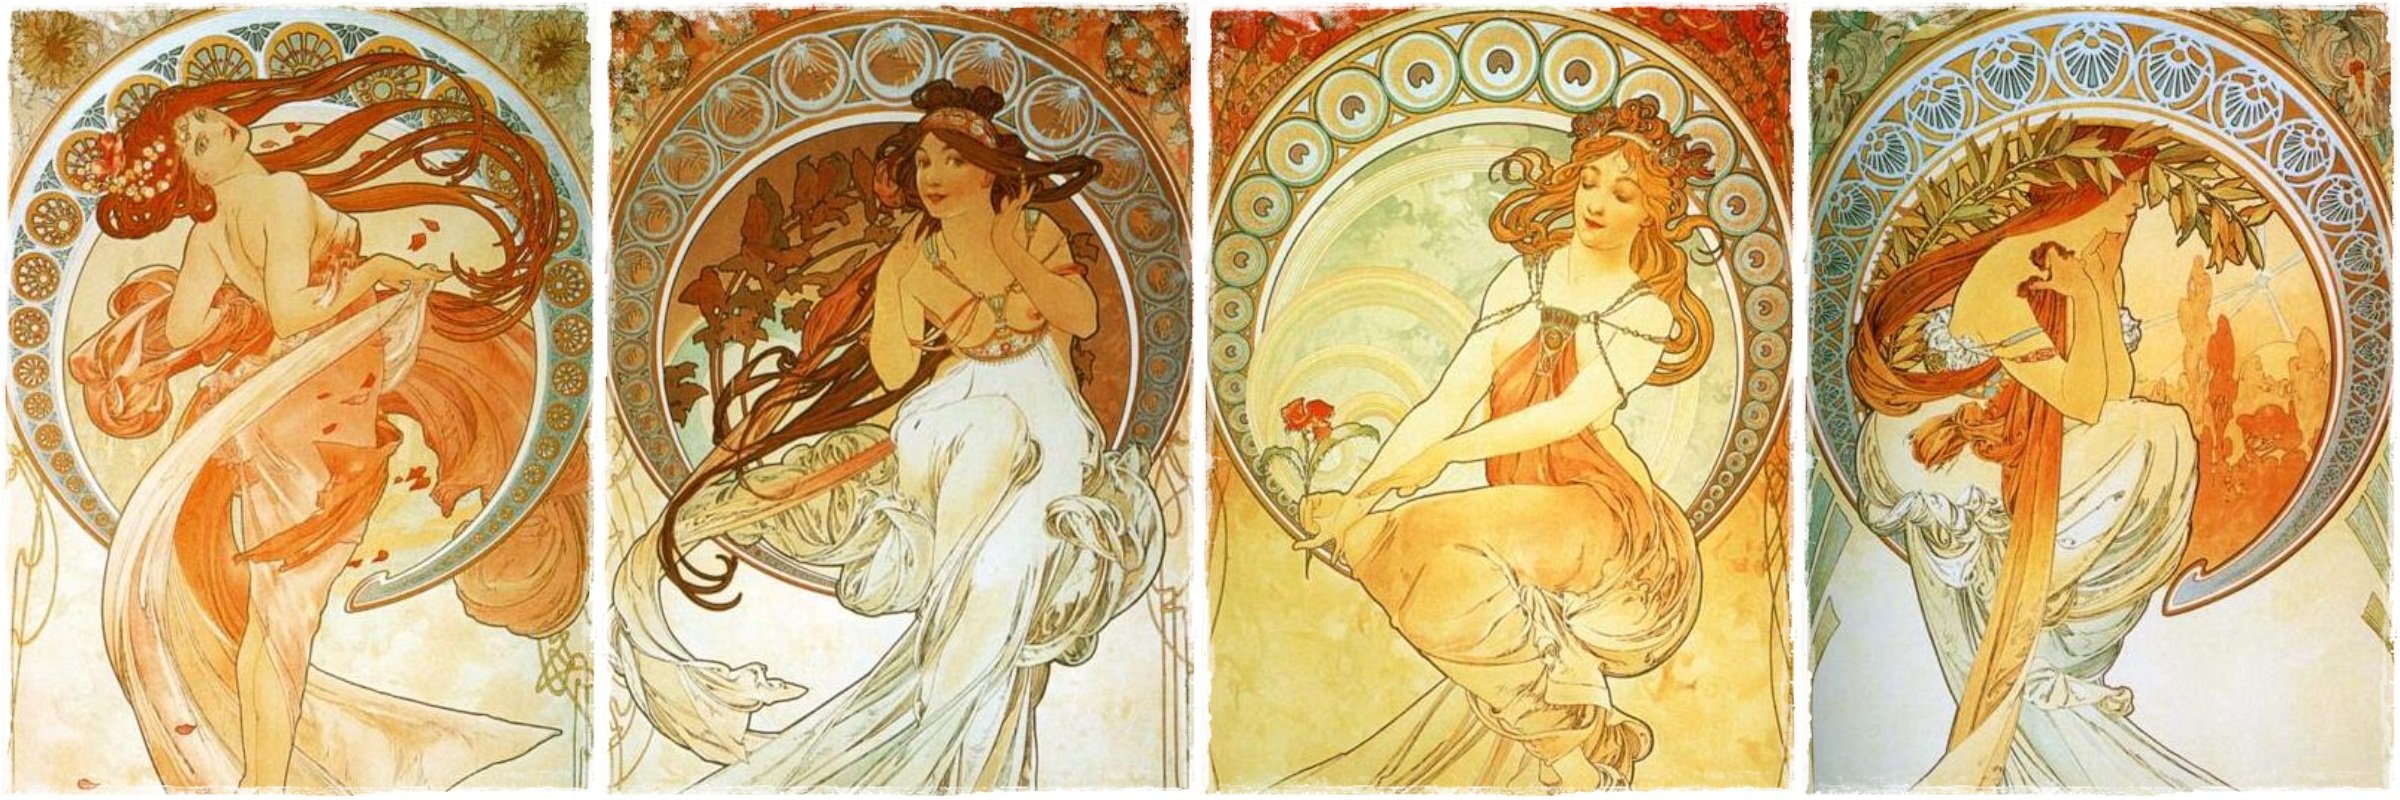 Alphonse Mucha On Pinterest Alphonse Mucha Art Nouveau And Joan Of Arc